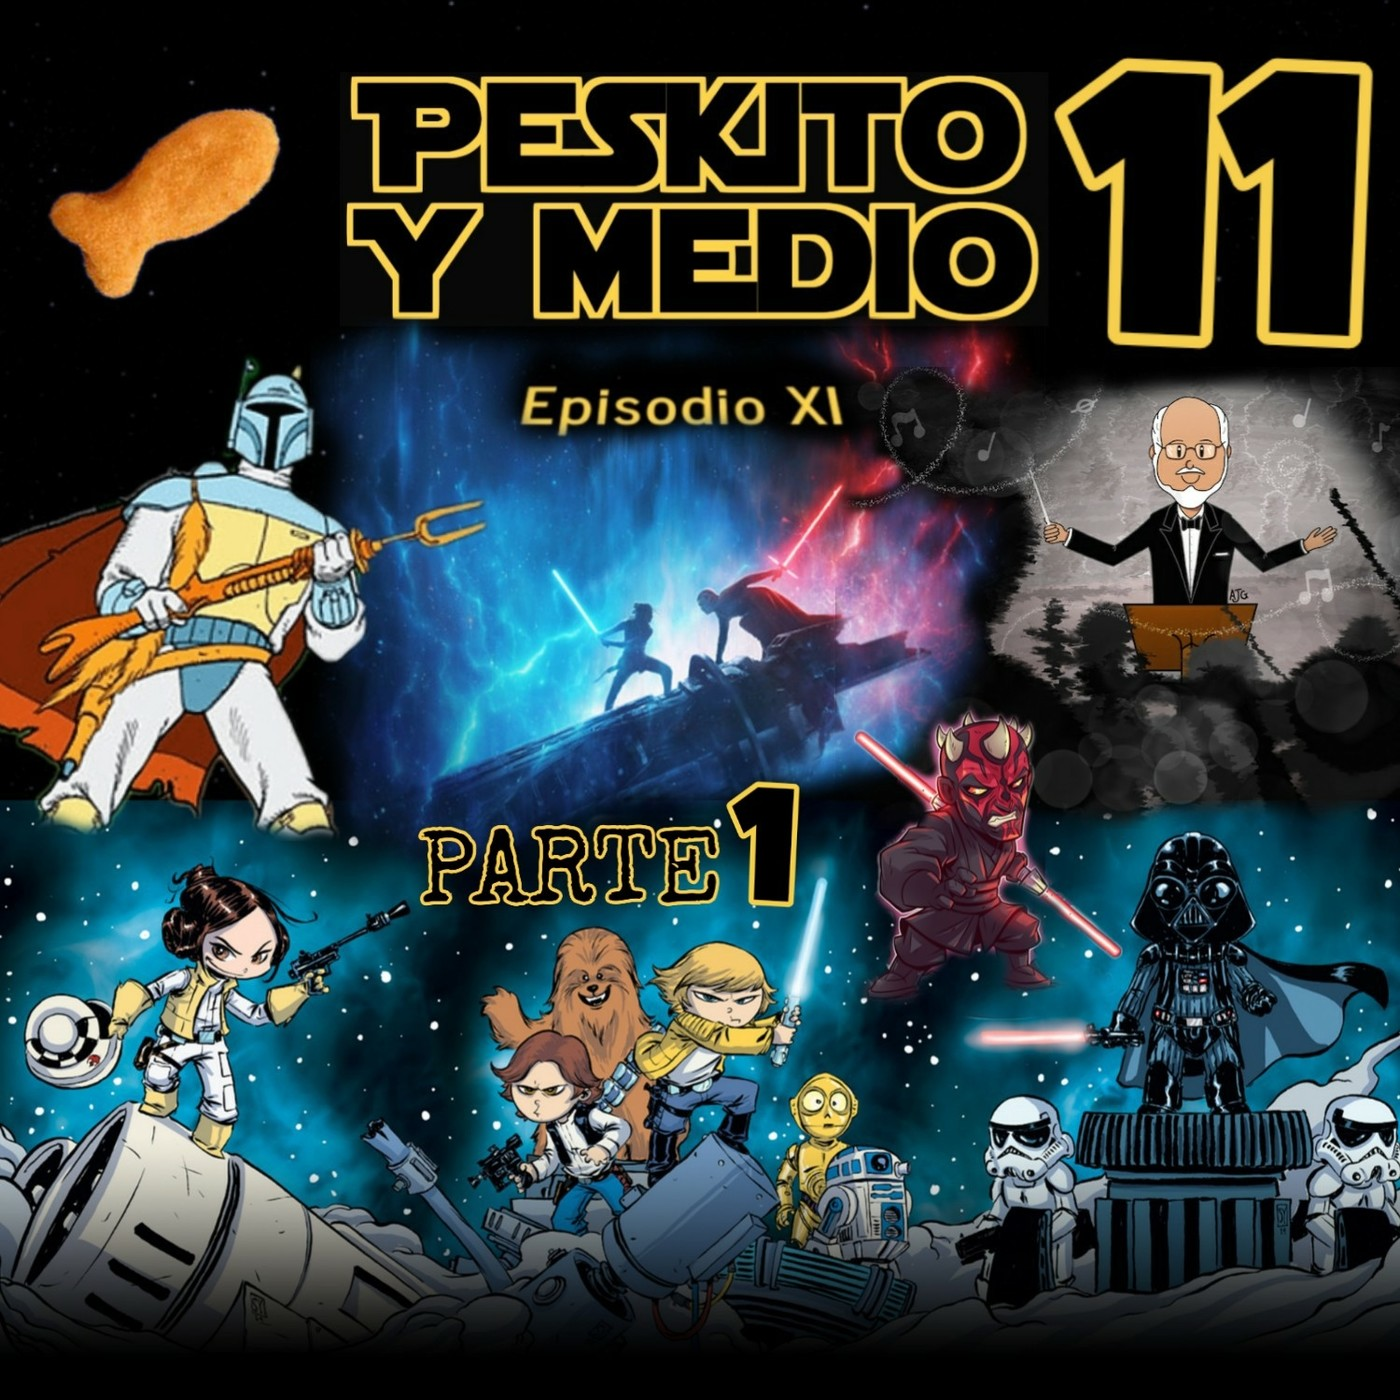 PYM 11 - Star Wars Special en Peskito y Medio Podcast